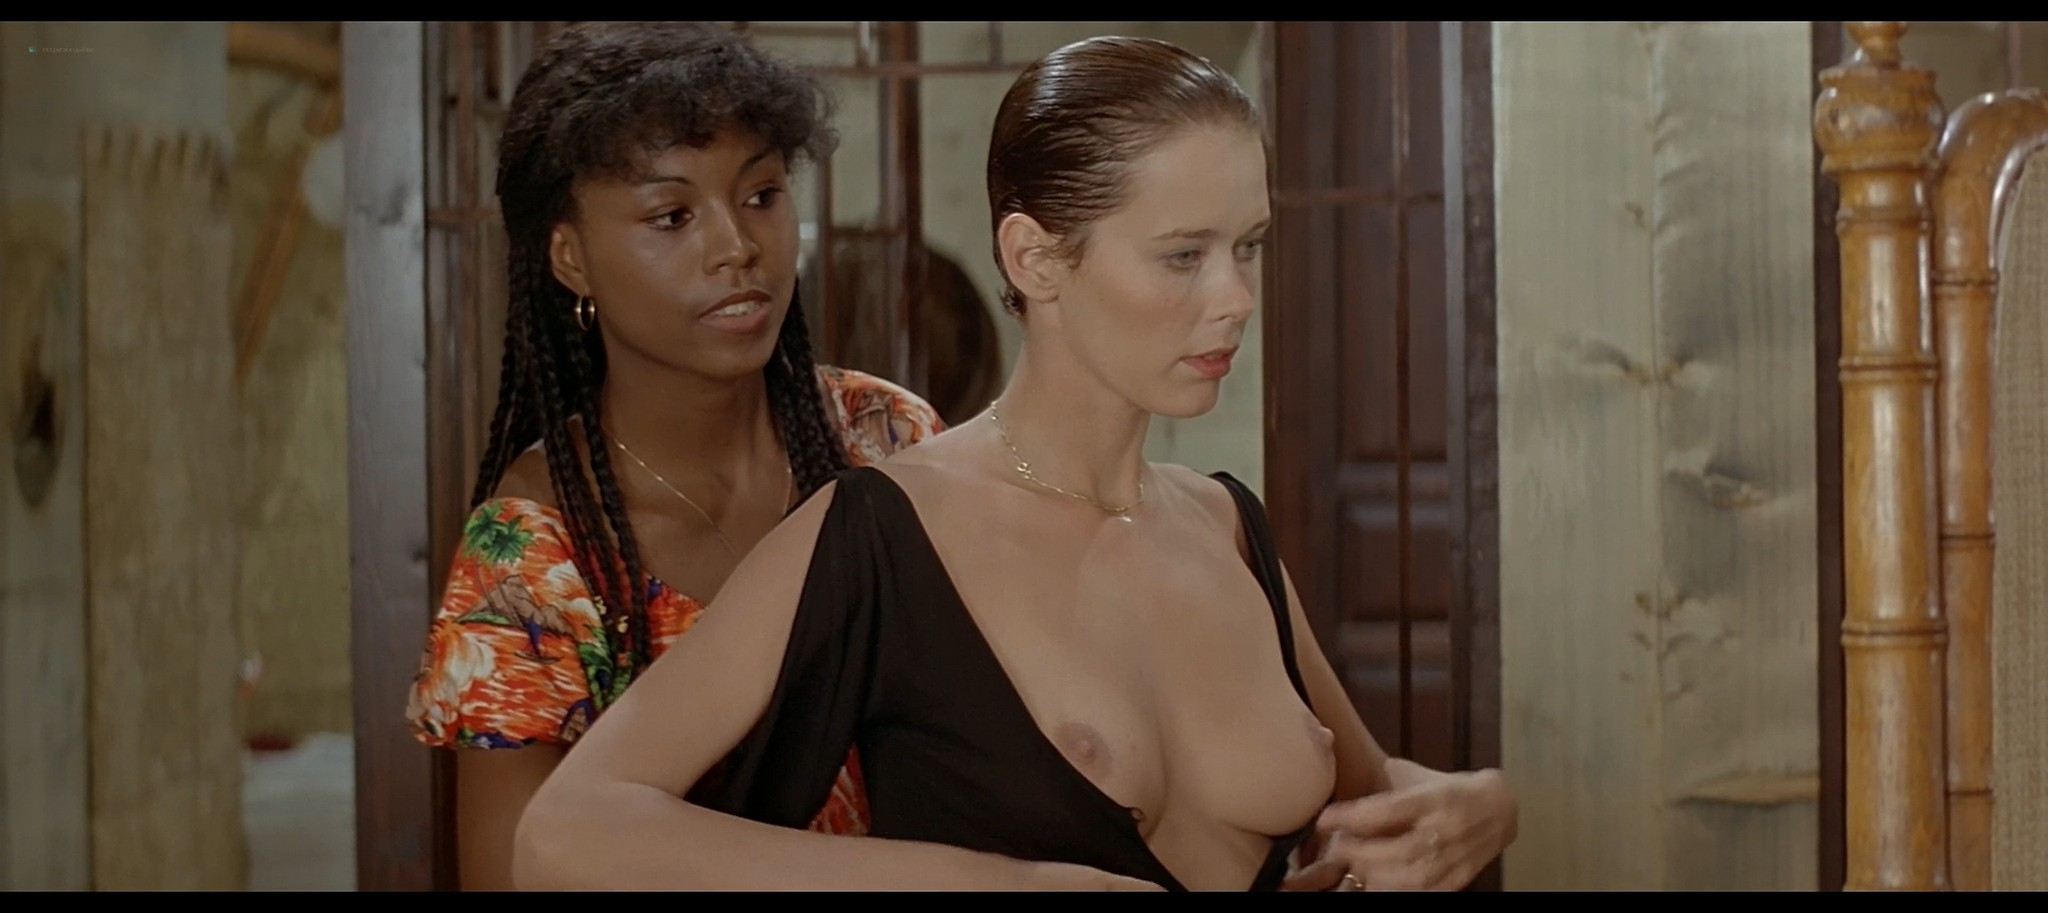 Sylvia Kristel nude full frontal Charlotte Alexandra and others nude sex Good bye Emmanuelle 1977 1080p BluRay 3